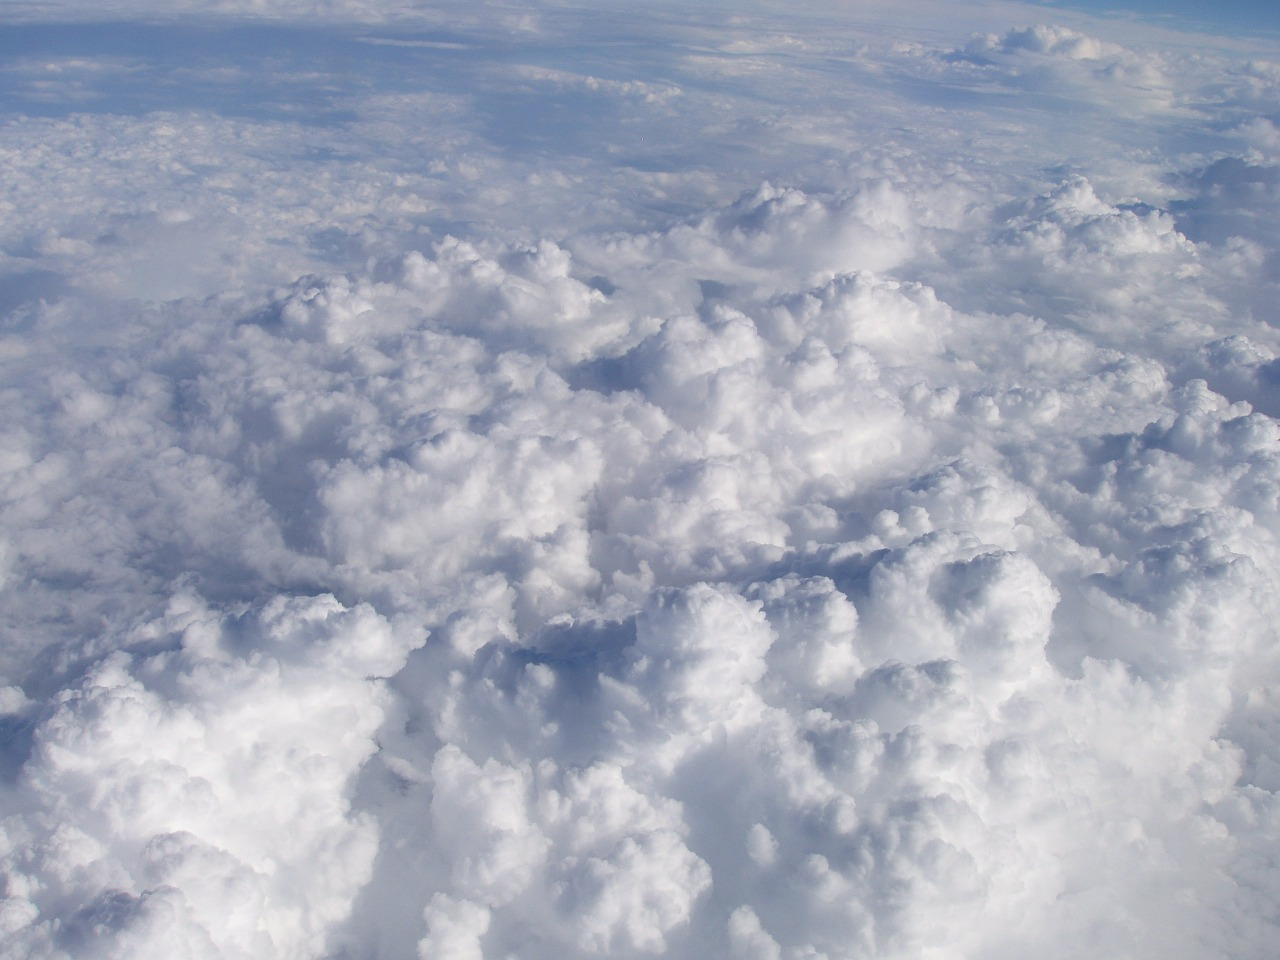 <p>Experiments to make clouds whiter and reflect more sunlight could slow down global warming</p>